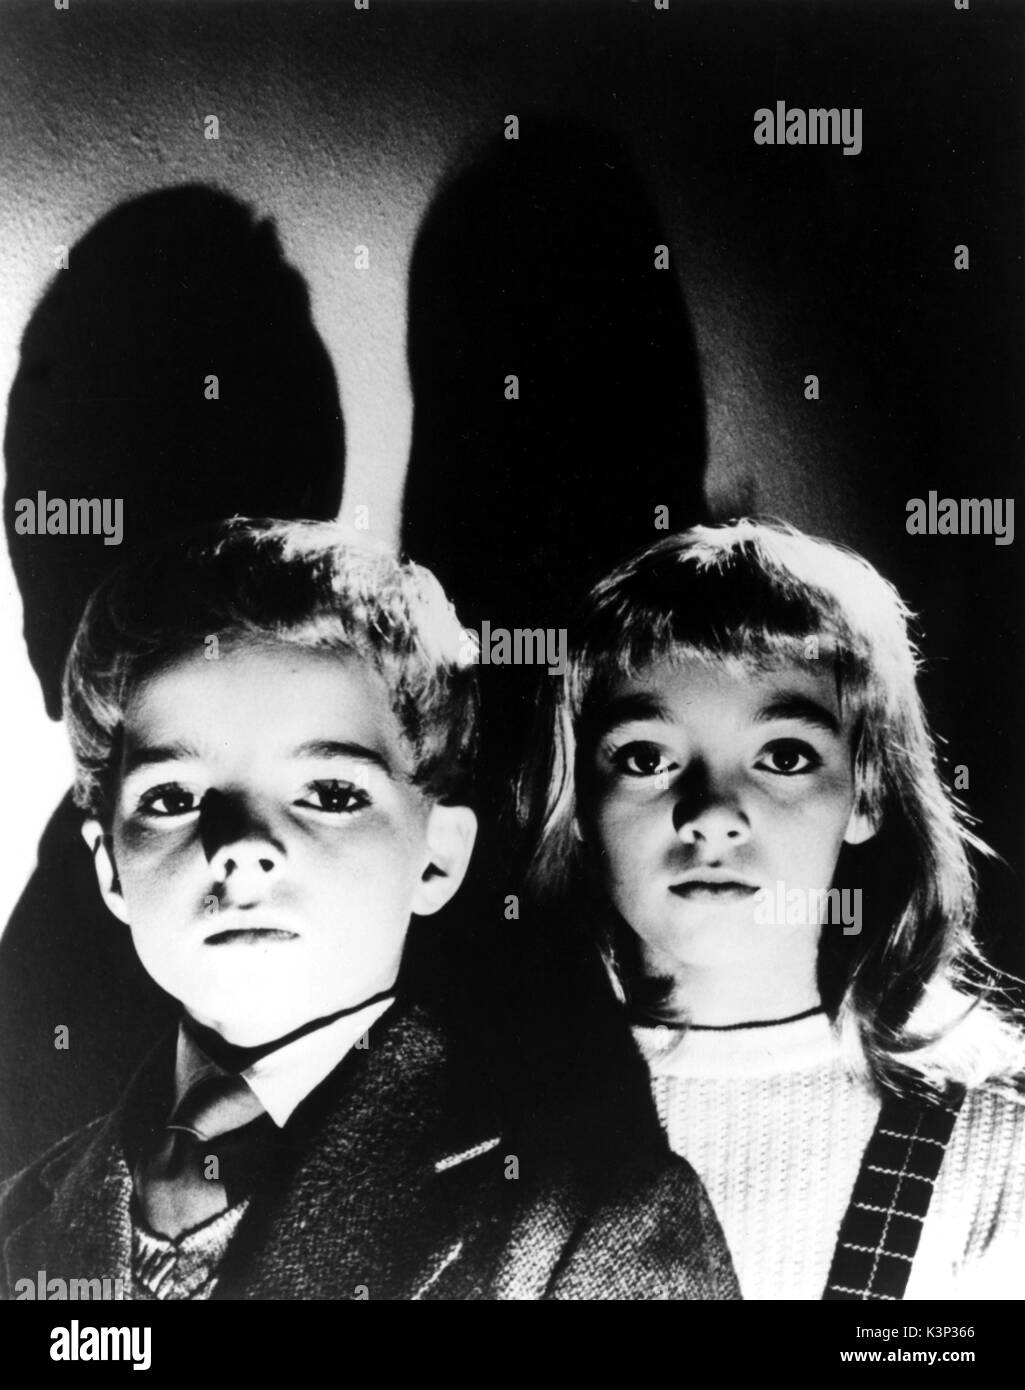 VILLAGE OF THE DAMNED [BR 1960] MARTIN STEPHENS, JUNE COWELL     Date: 1960 - Stock Image